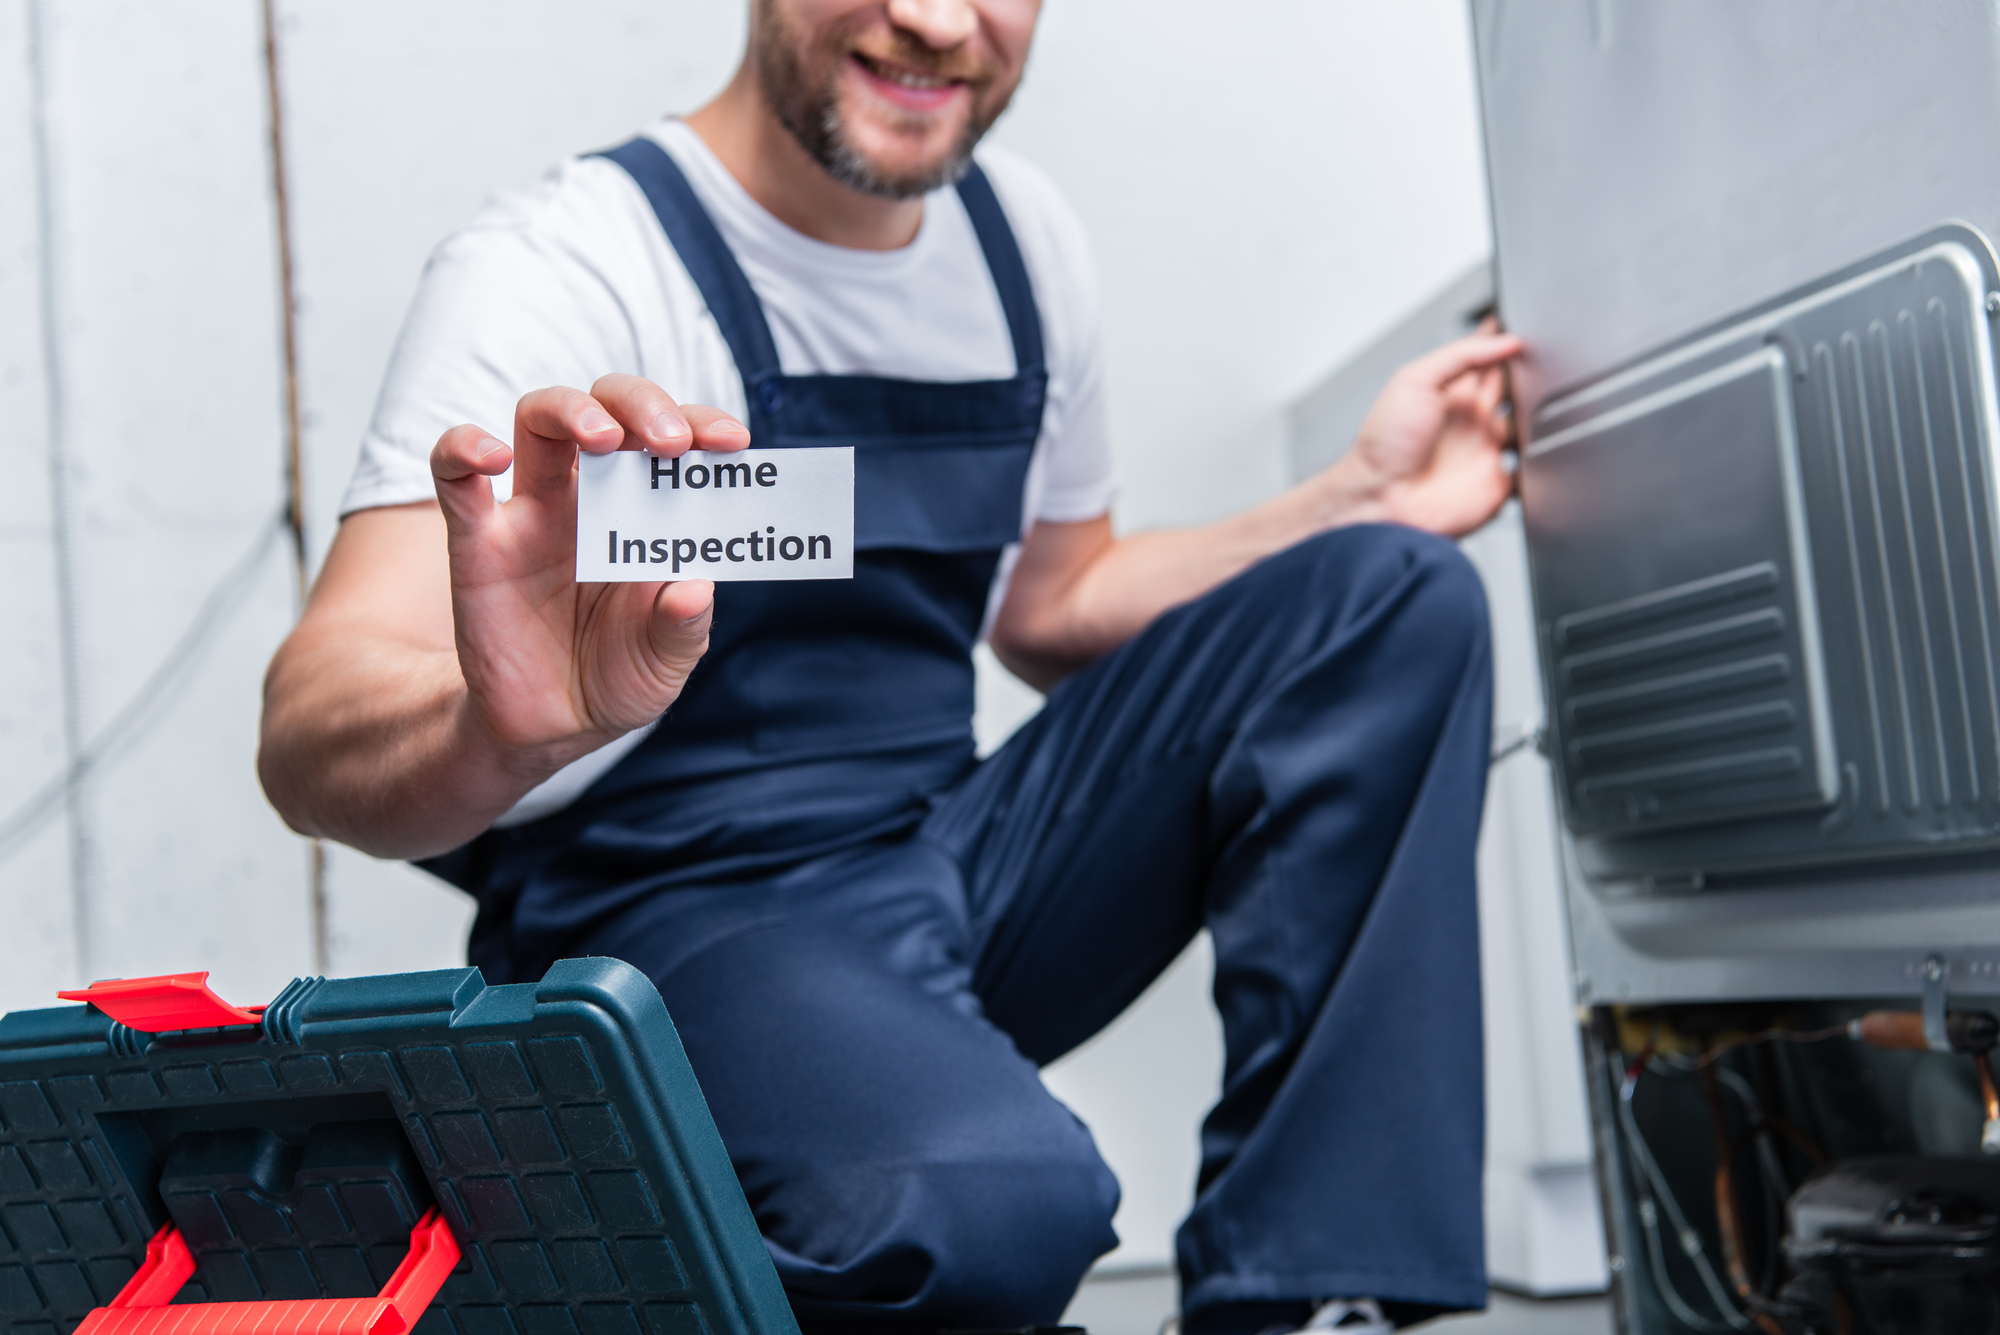 Partial view of adult craftsman showing card with lettering home inspection while sitting near broken refrigerator